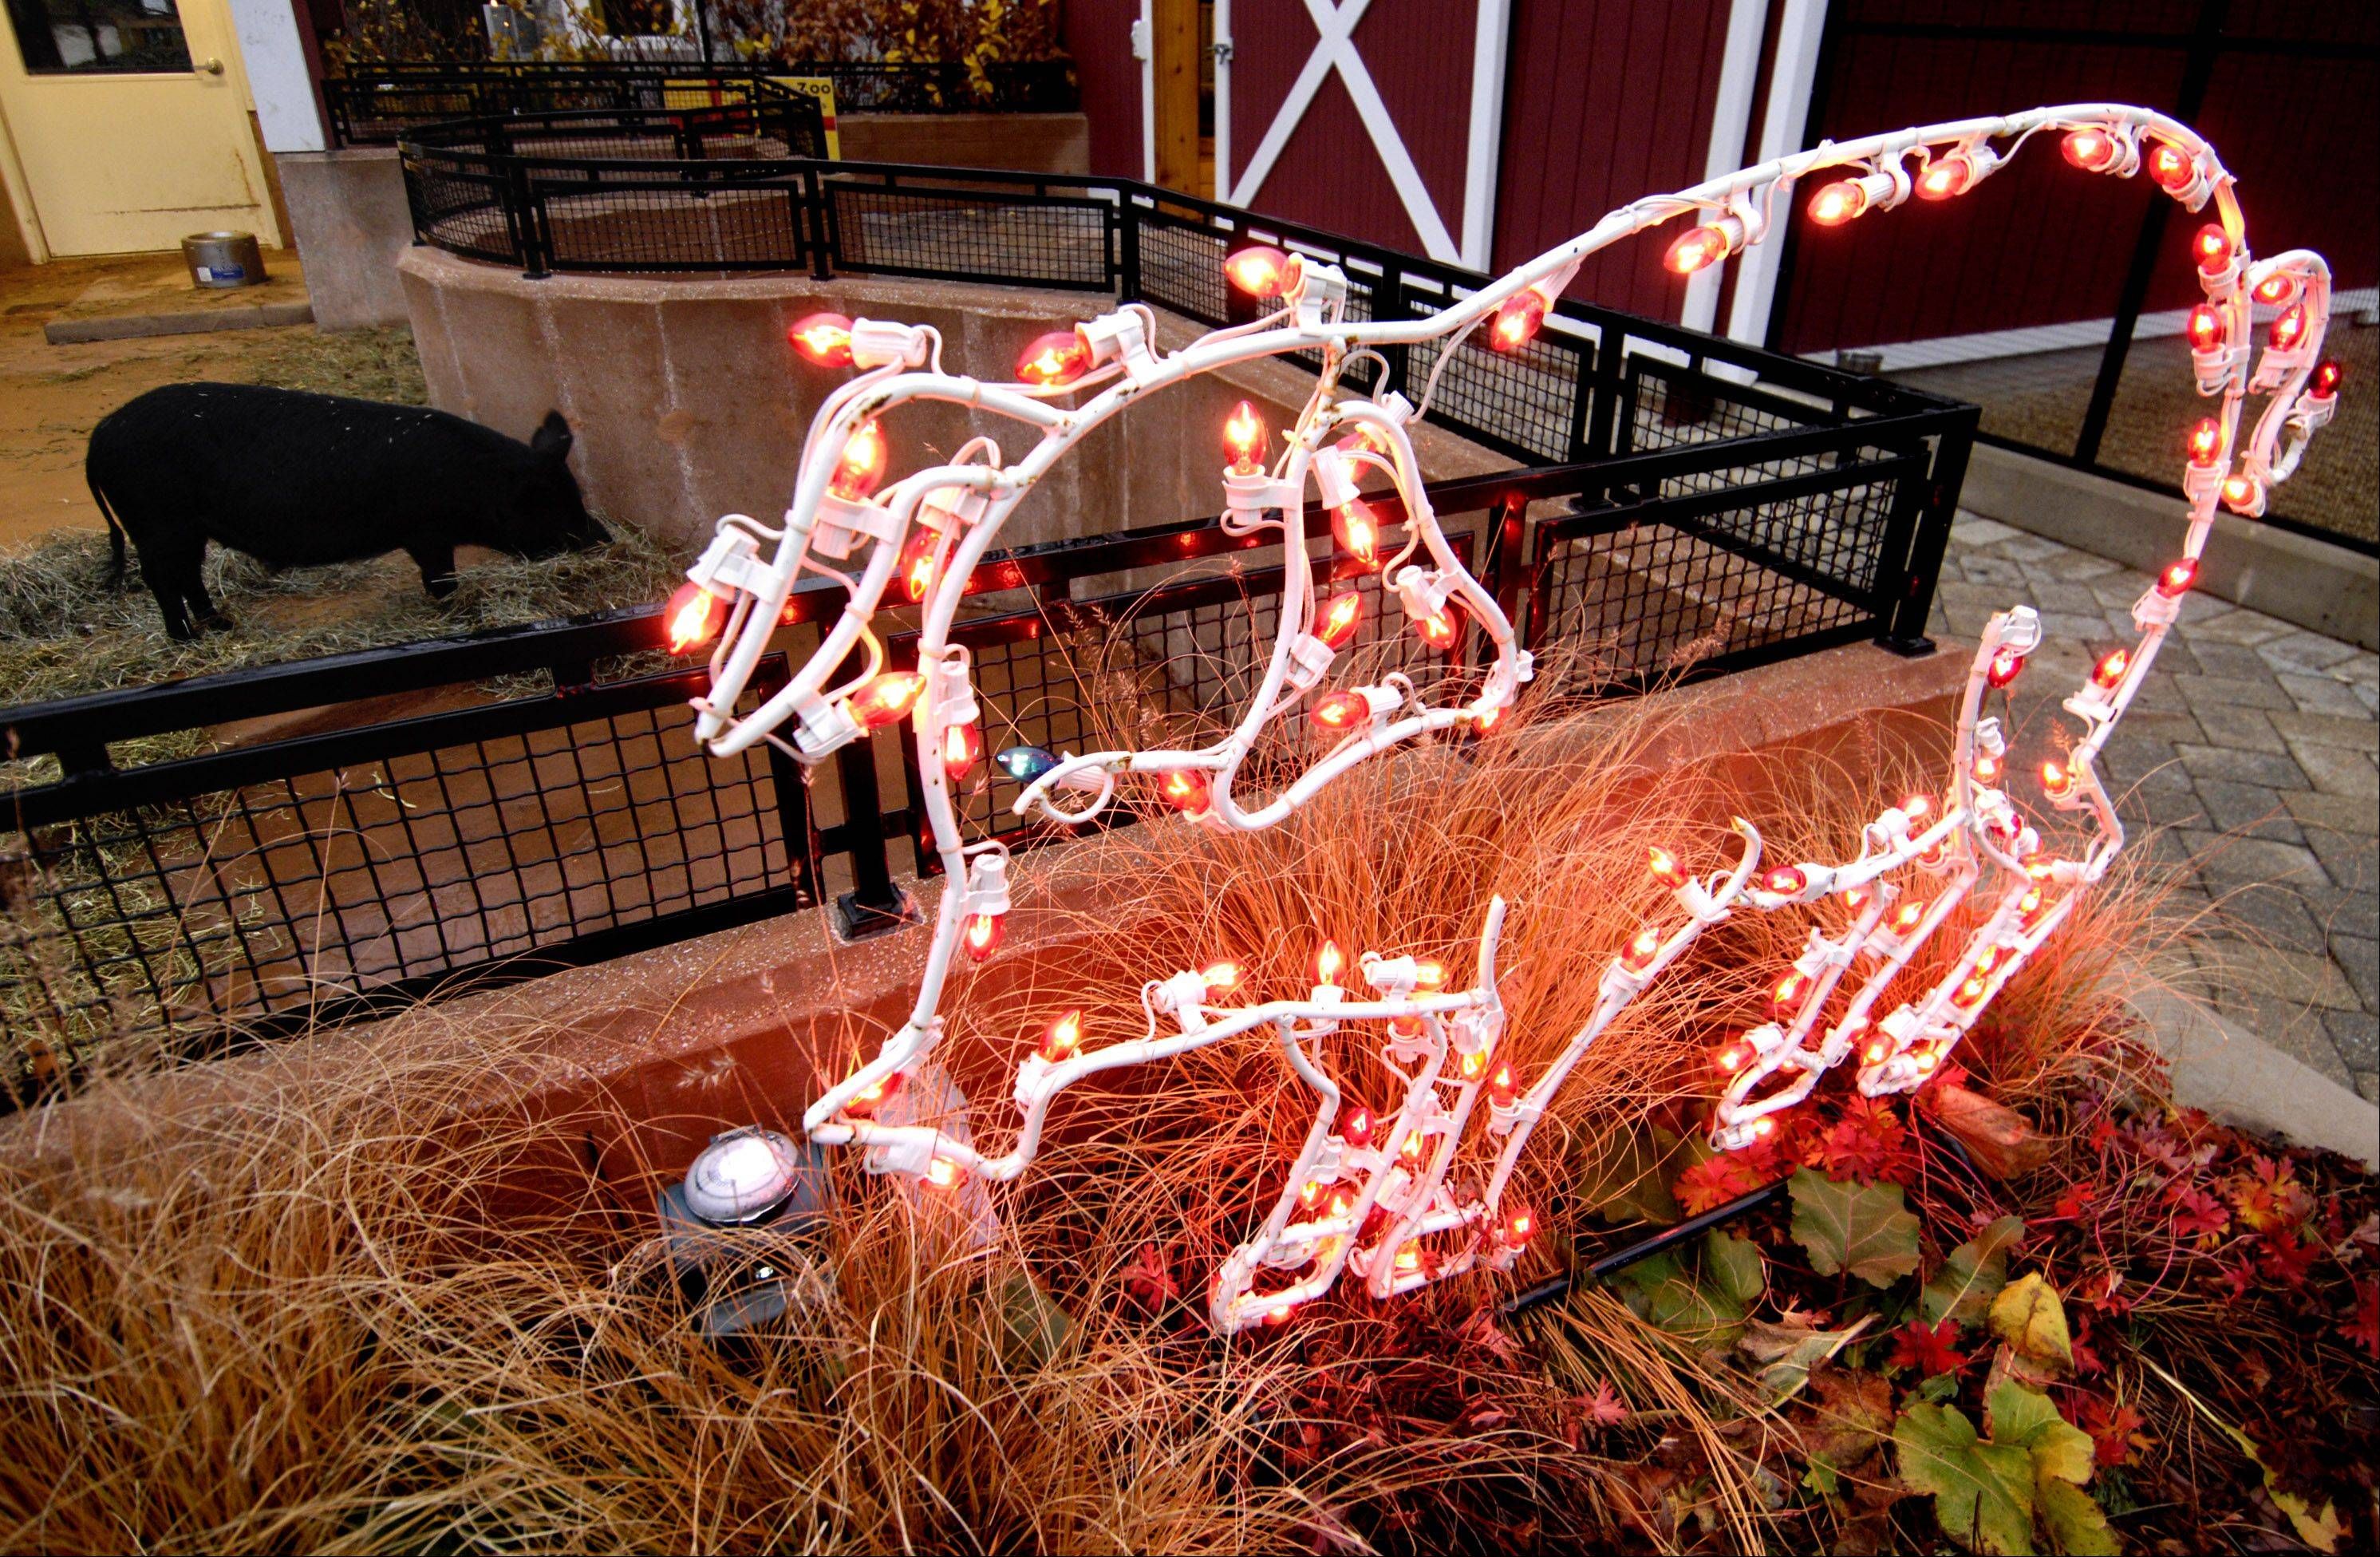 See holiday lights and holiday displays at the annual Festival of Lights at the Cosley Zoo in Wheaton.